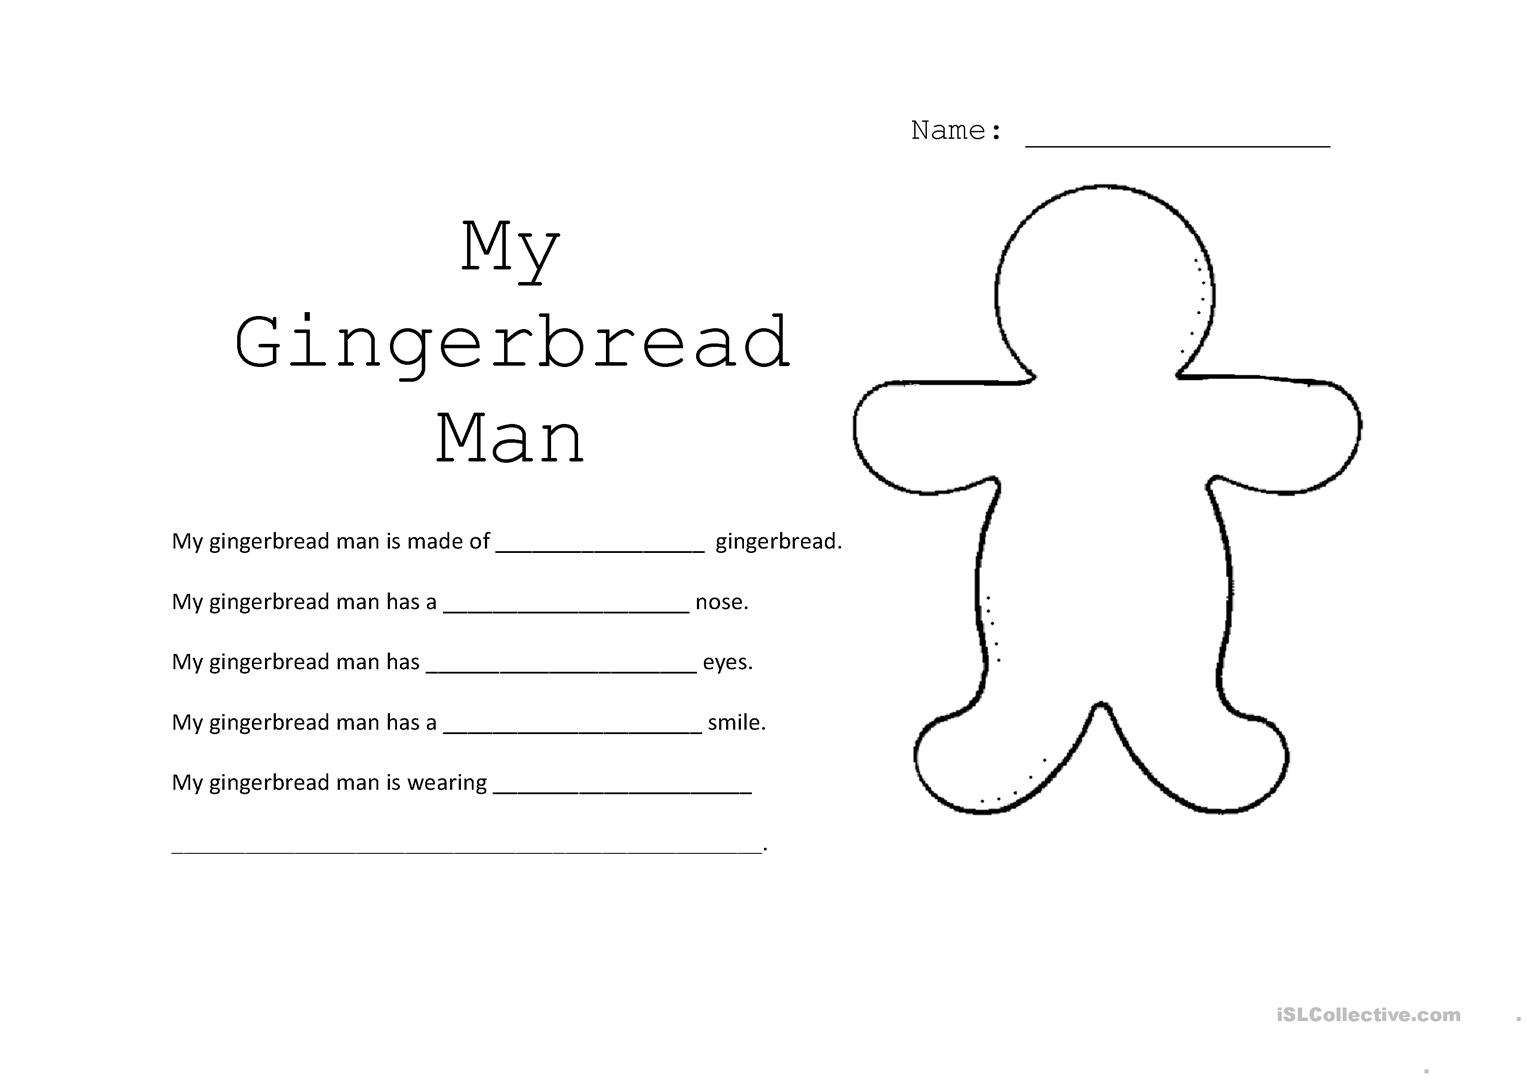 Gingerbread Man Adjectives Worksheet